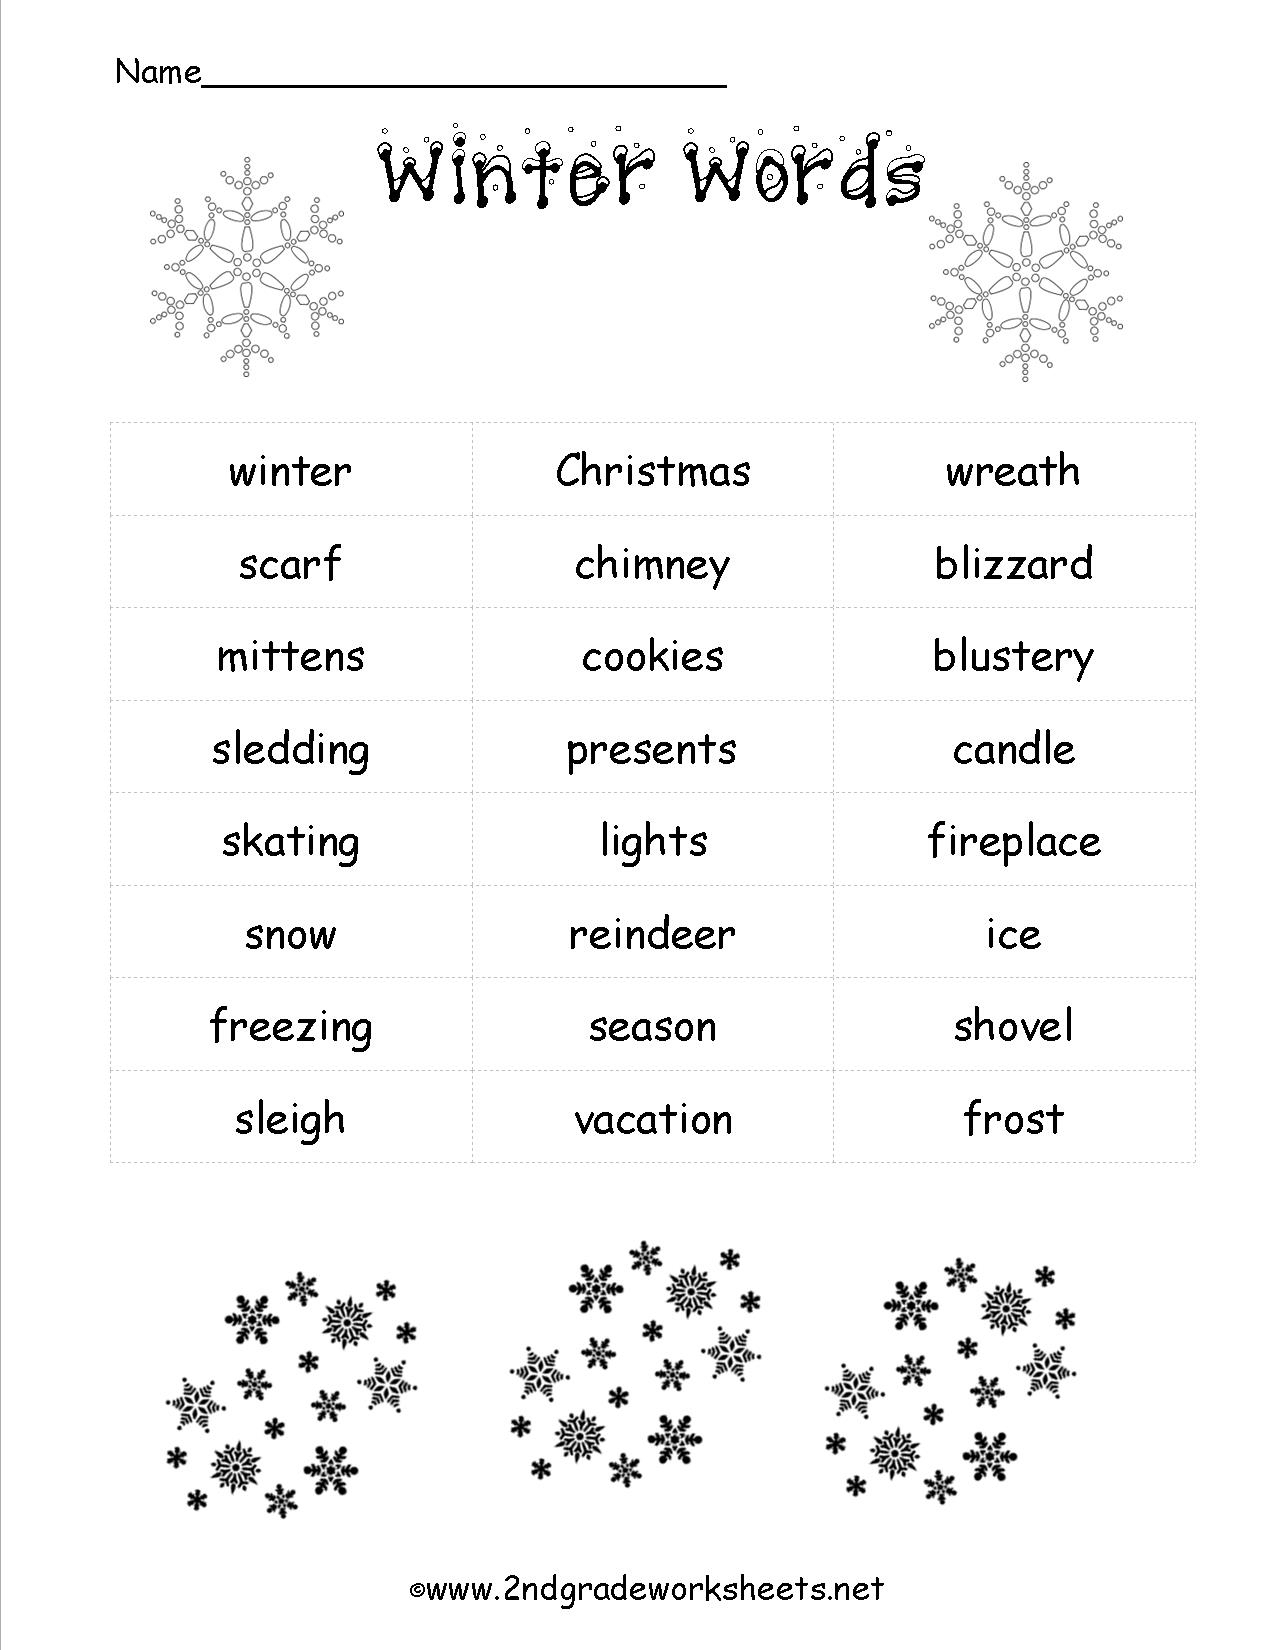 Christmas Worksheets And Printouts | Free Printable Holiday Worksheets